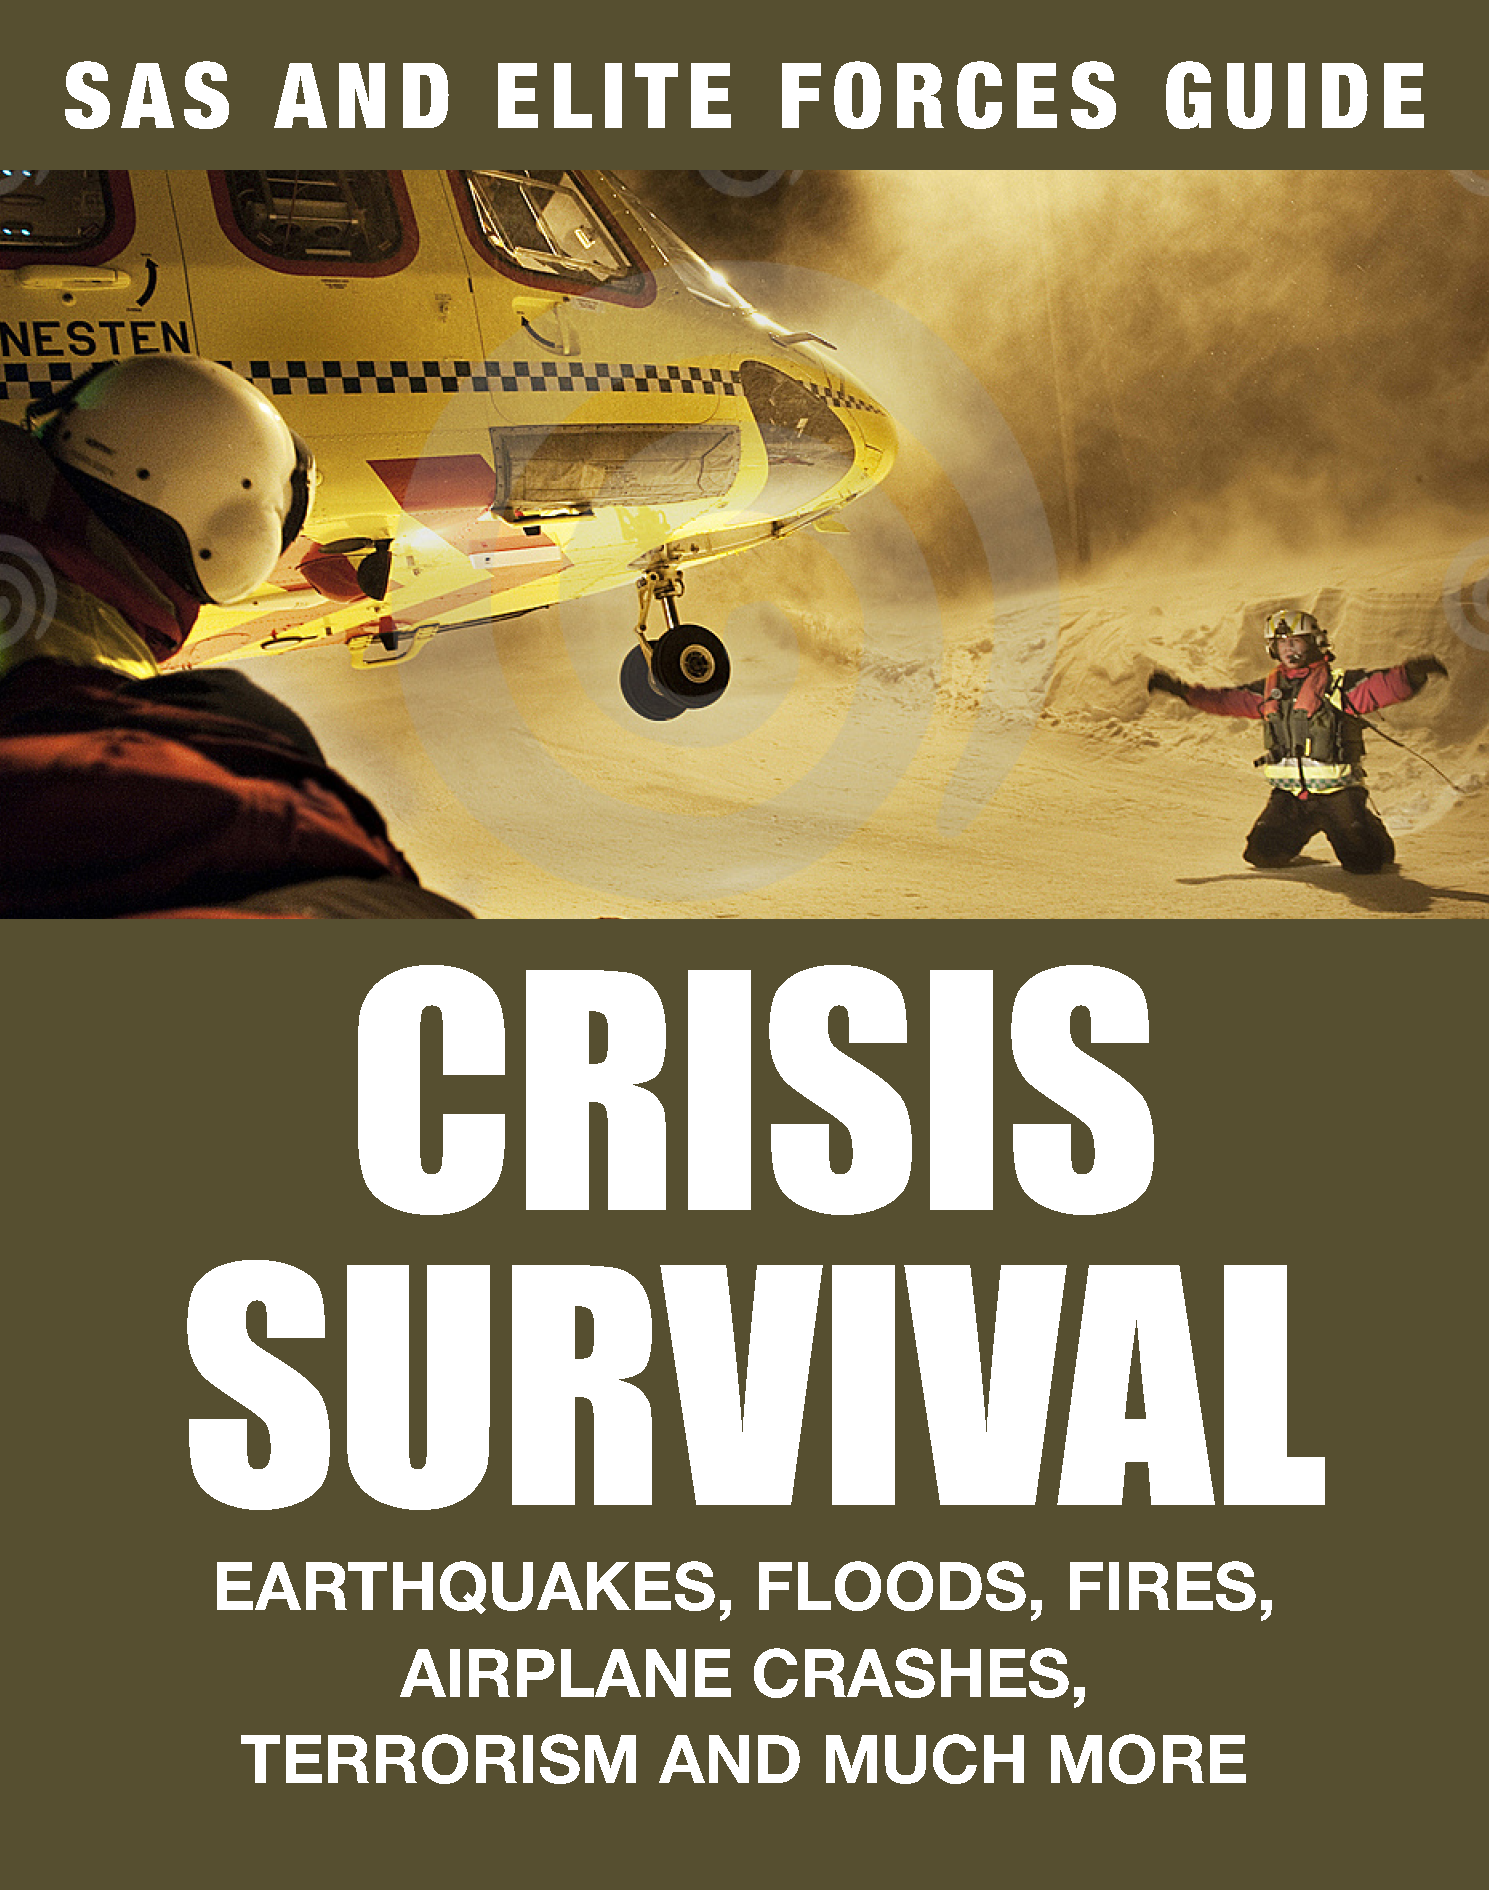 SAS and Elite Forces Guide: Crisis Survival